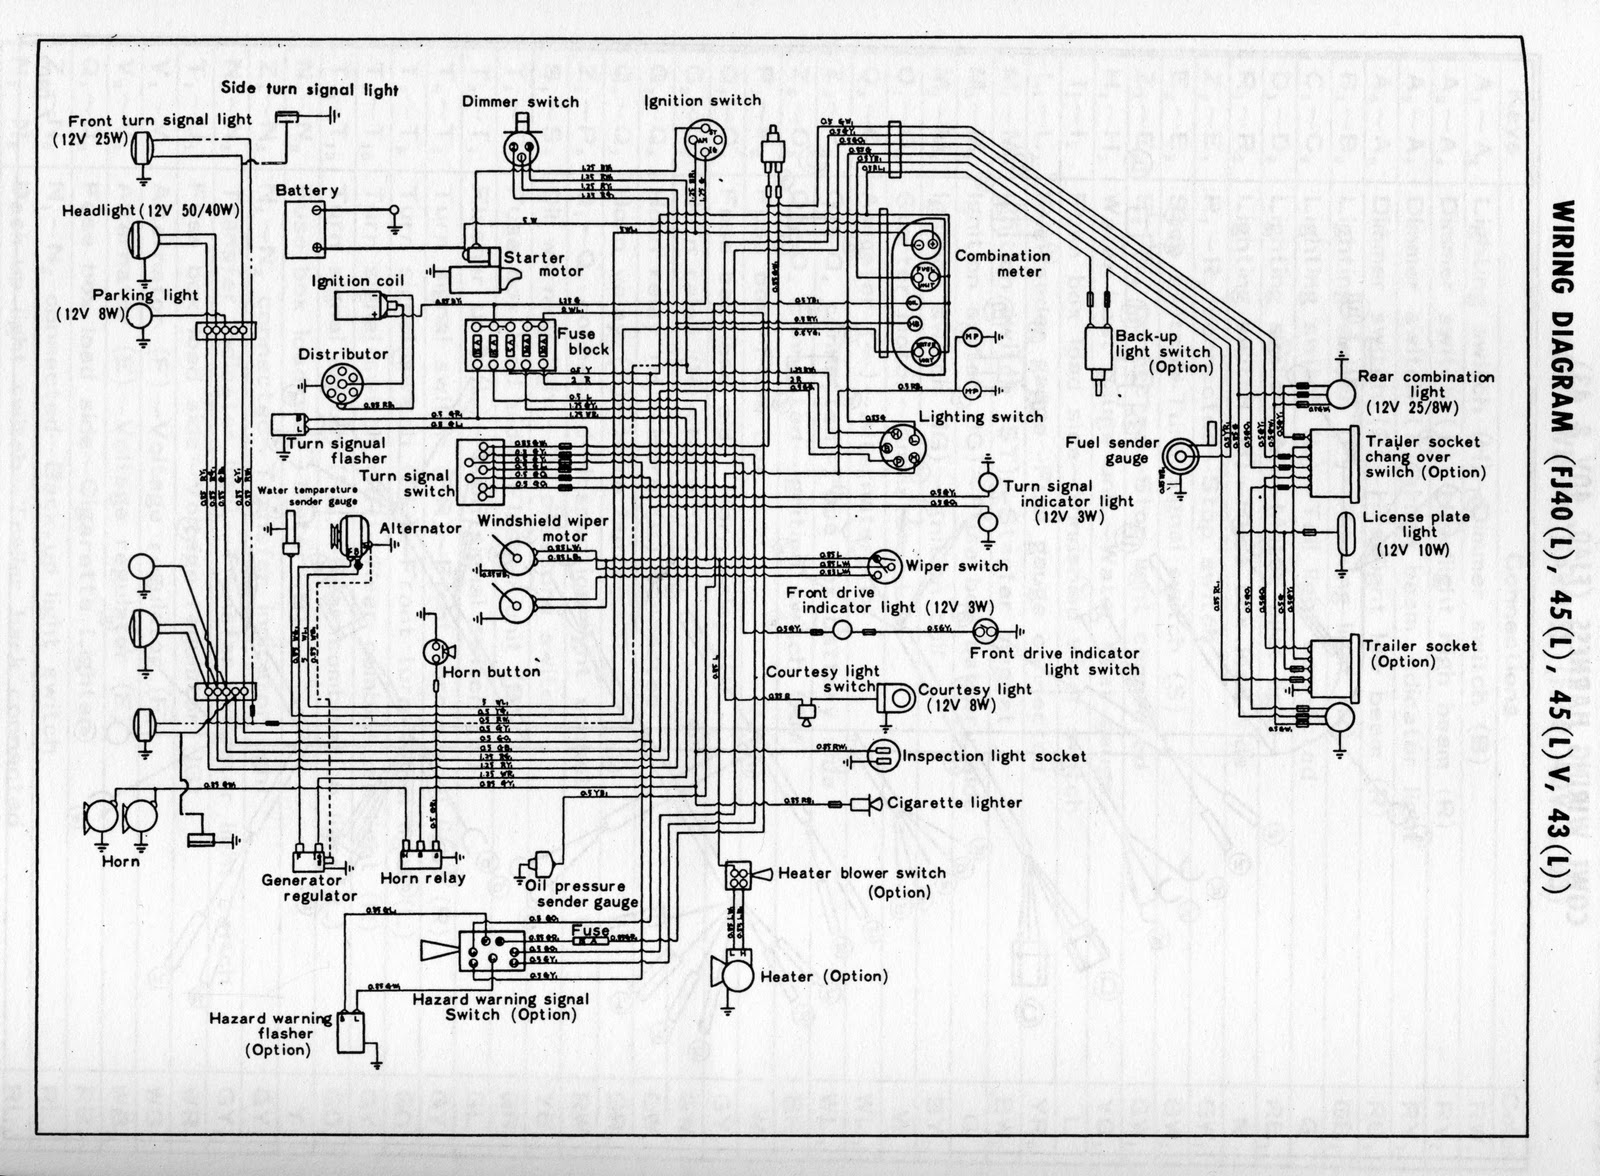 FJ40wiring small deep cuts february 2011 2006 big dog wiring diagram at pacquiaovsvargaslive.co